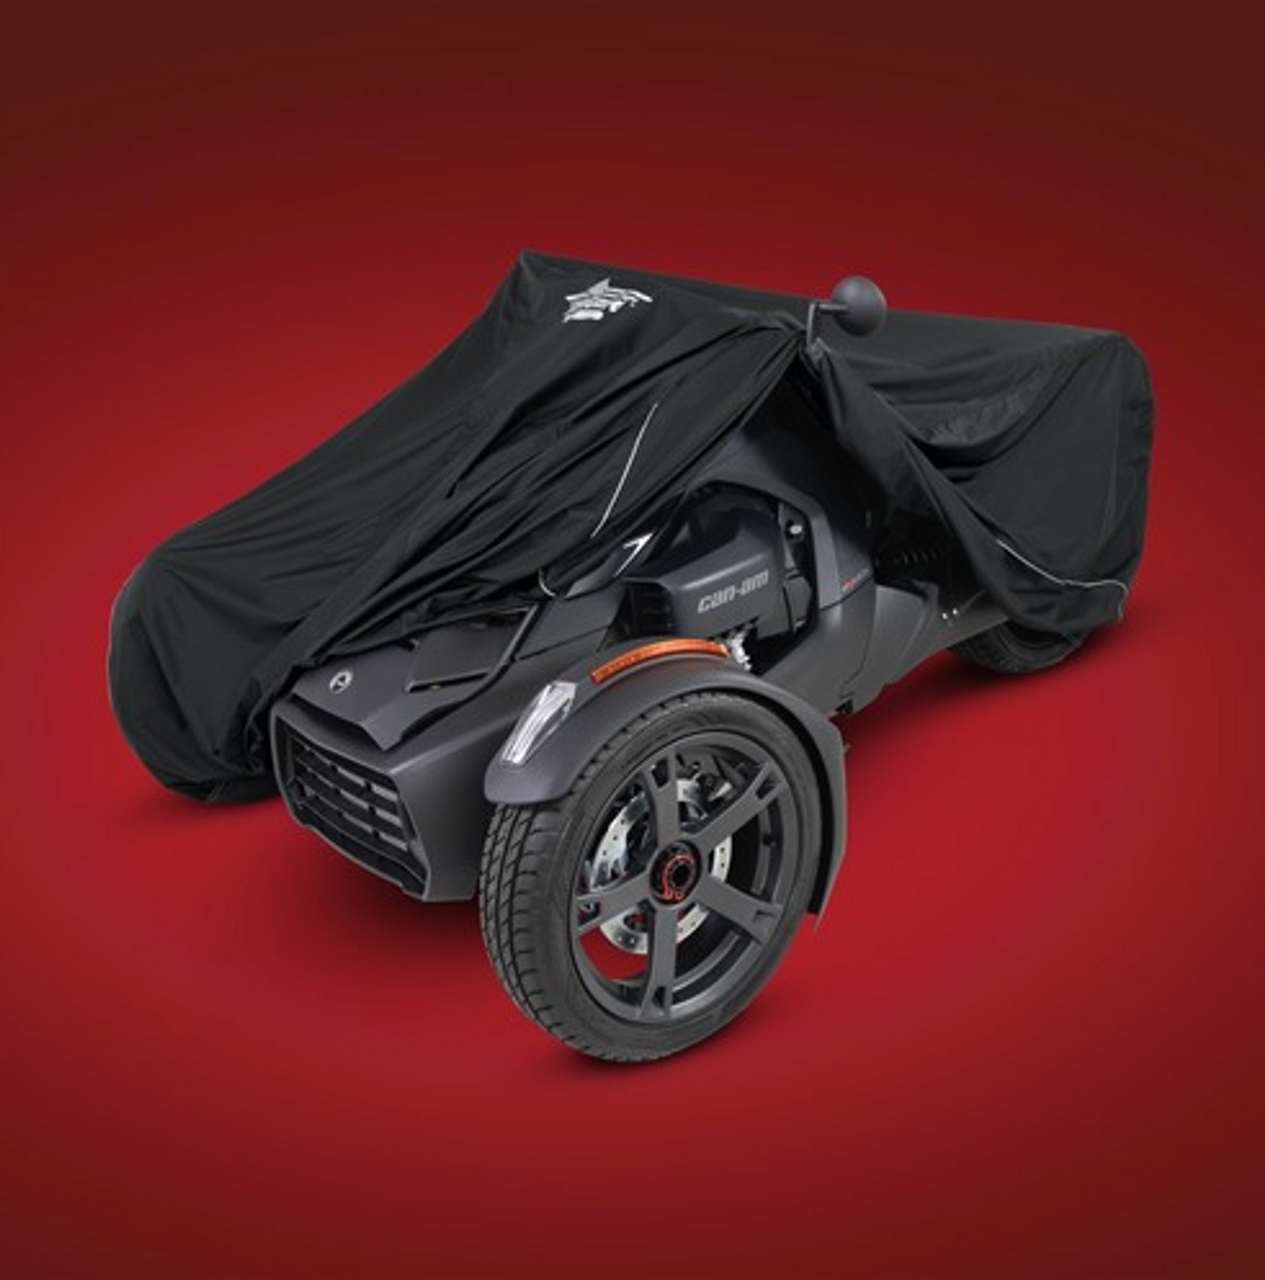 UltraGard® CAN-AM RYKER COVER (BLACK) (SC-474BK) Black Cover On Can-Am Ryker (pulled back)